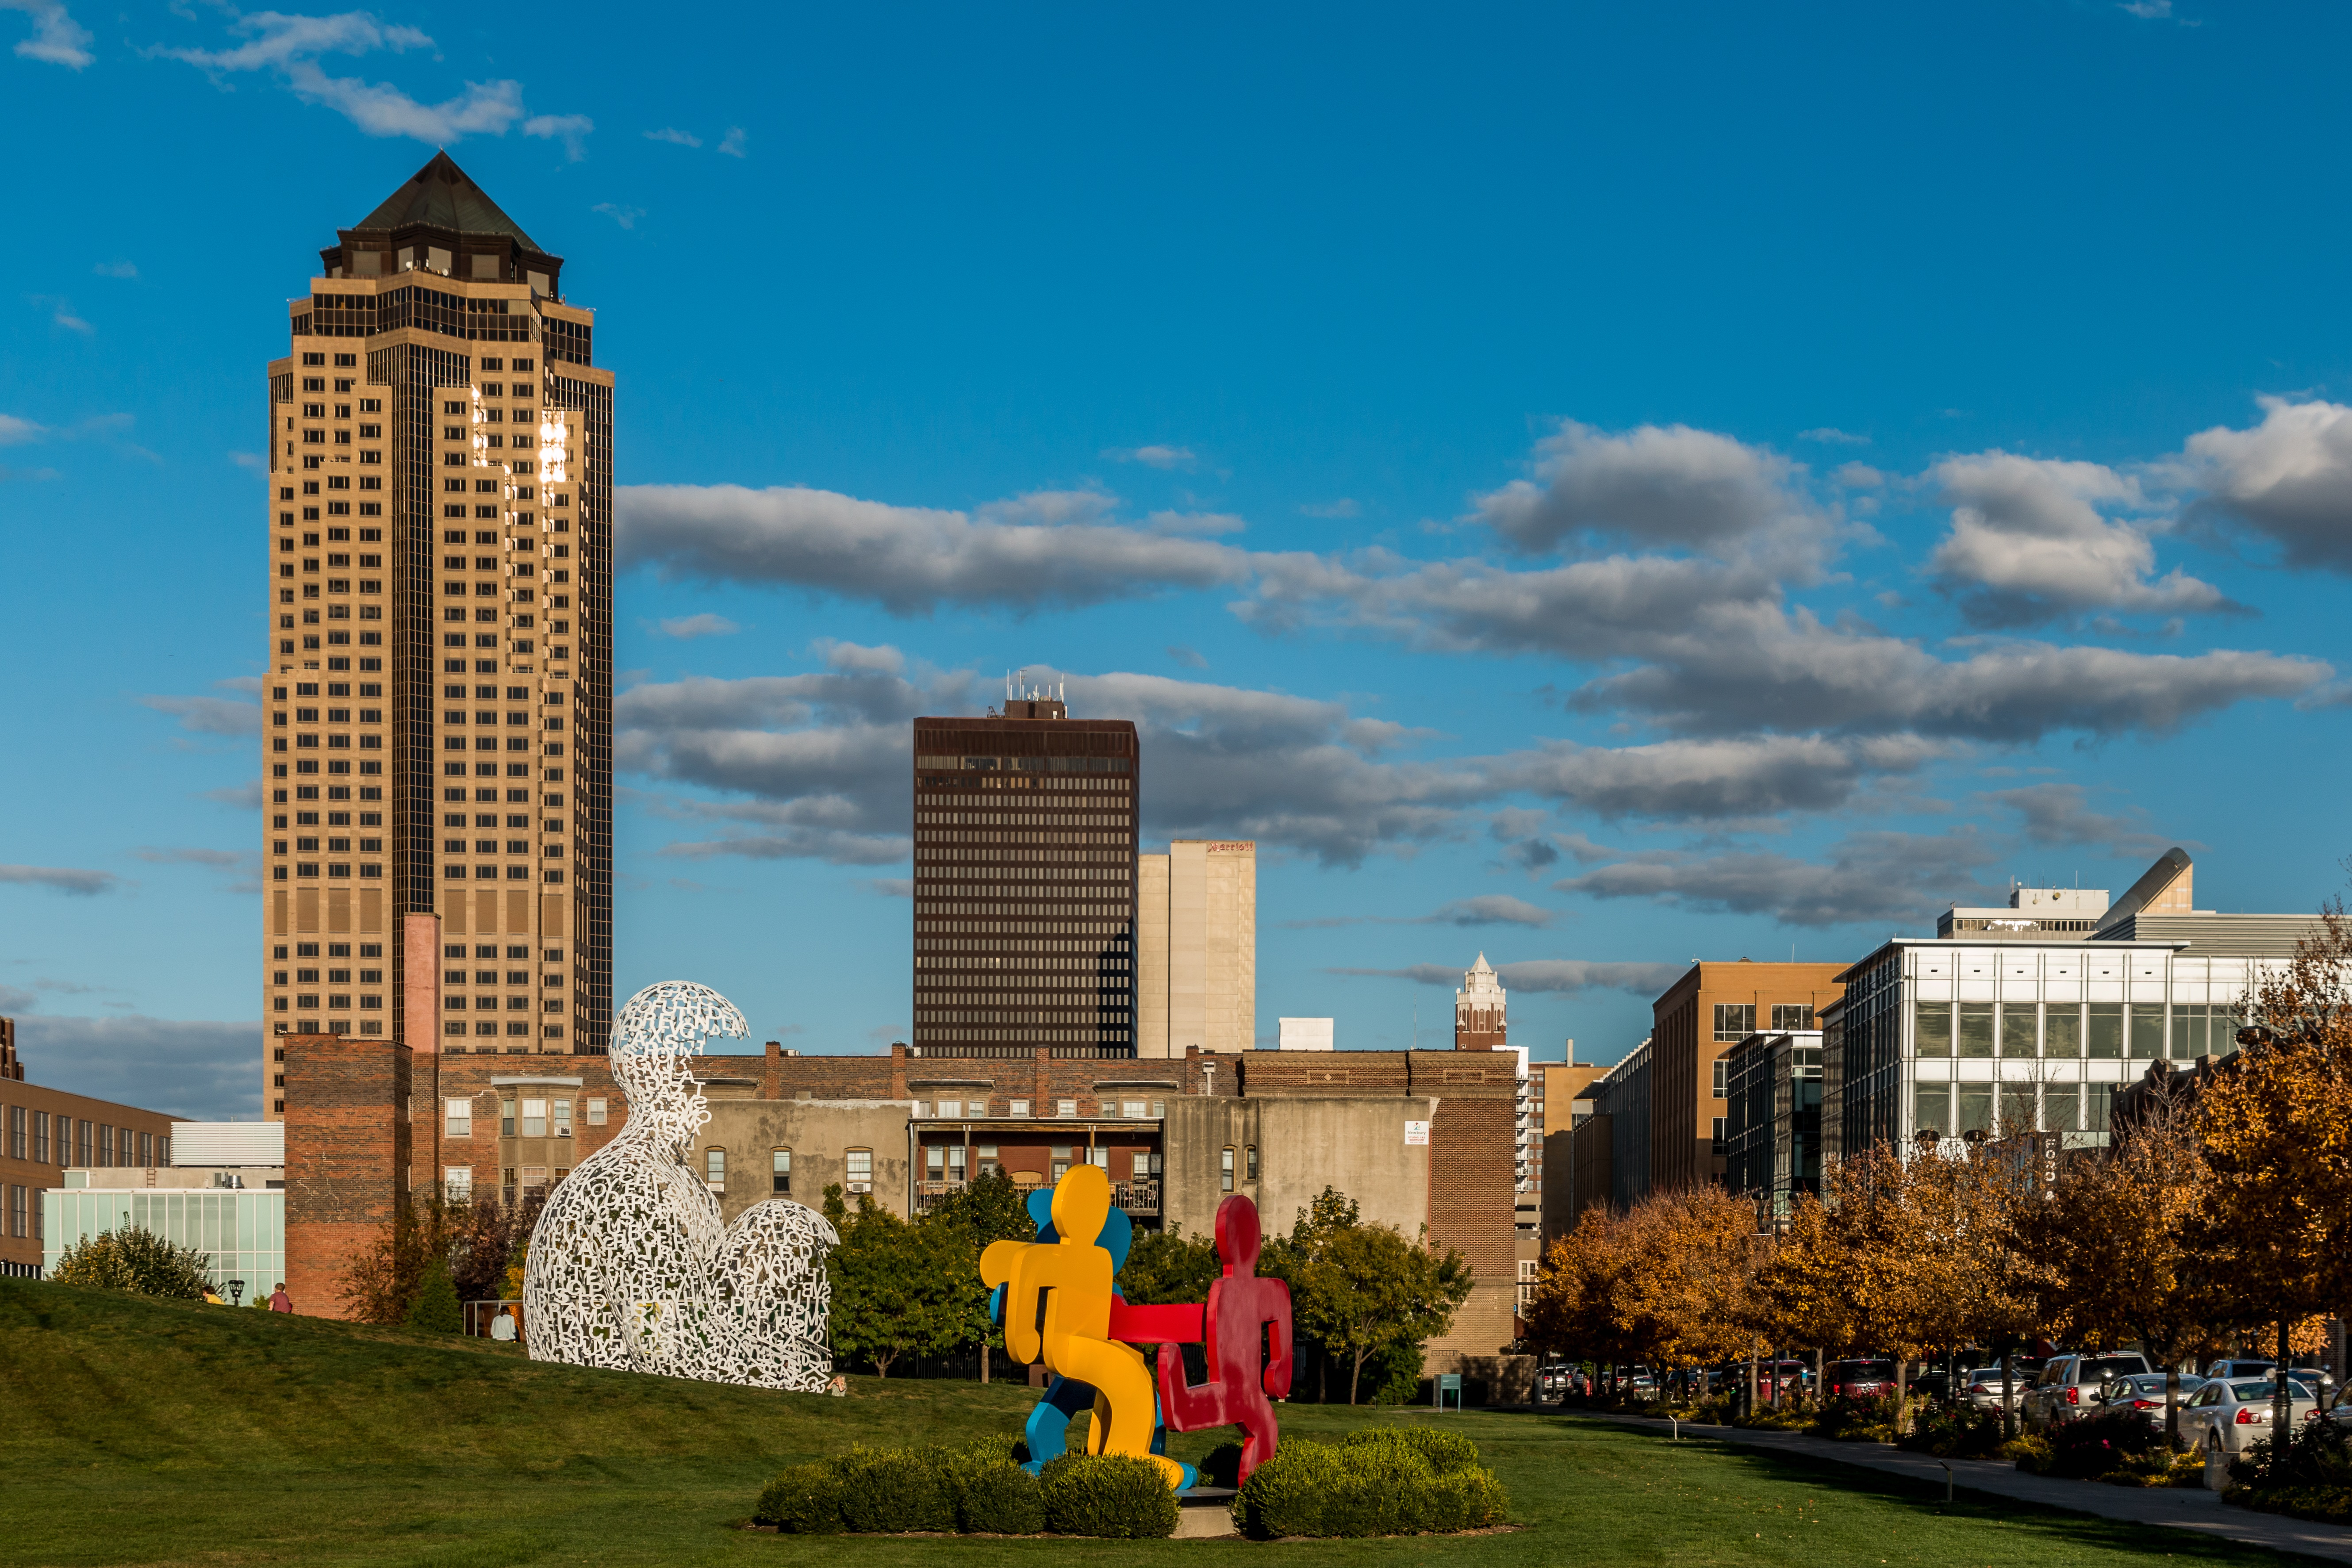 Free tours are given of the sculpture park in downtown Des Moines. One of my favorite free things to do in Des Moines!